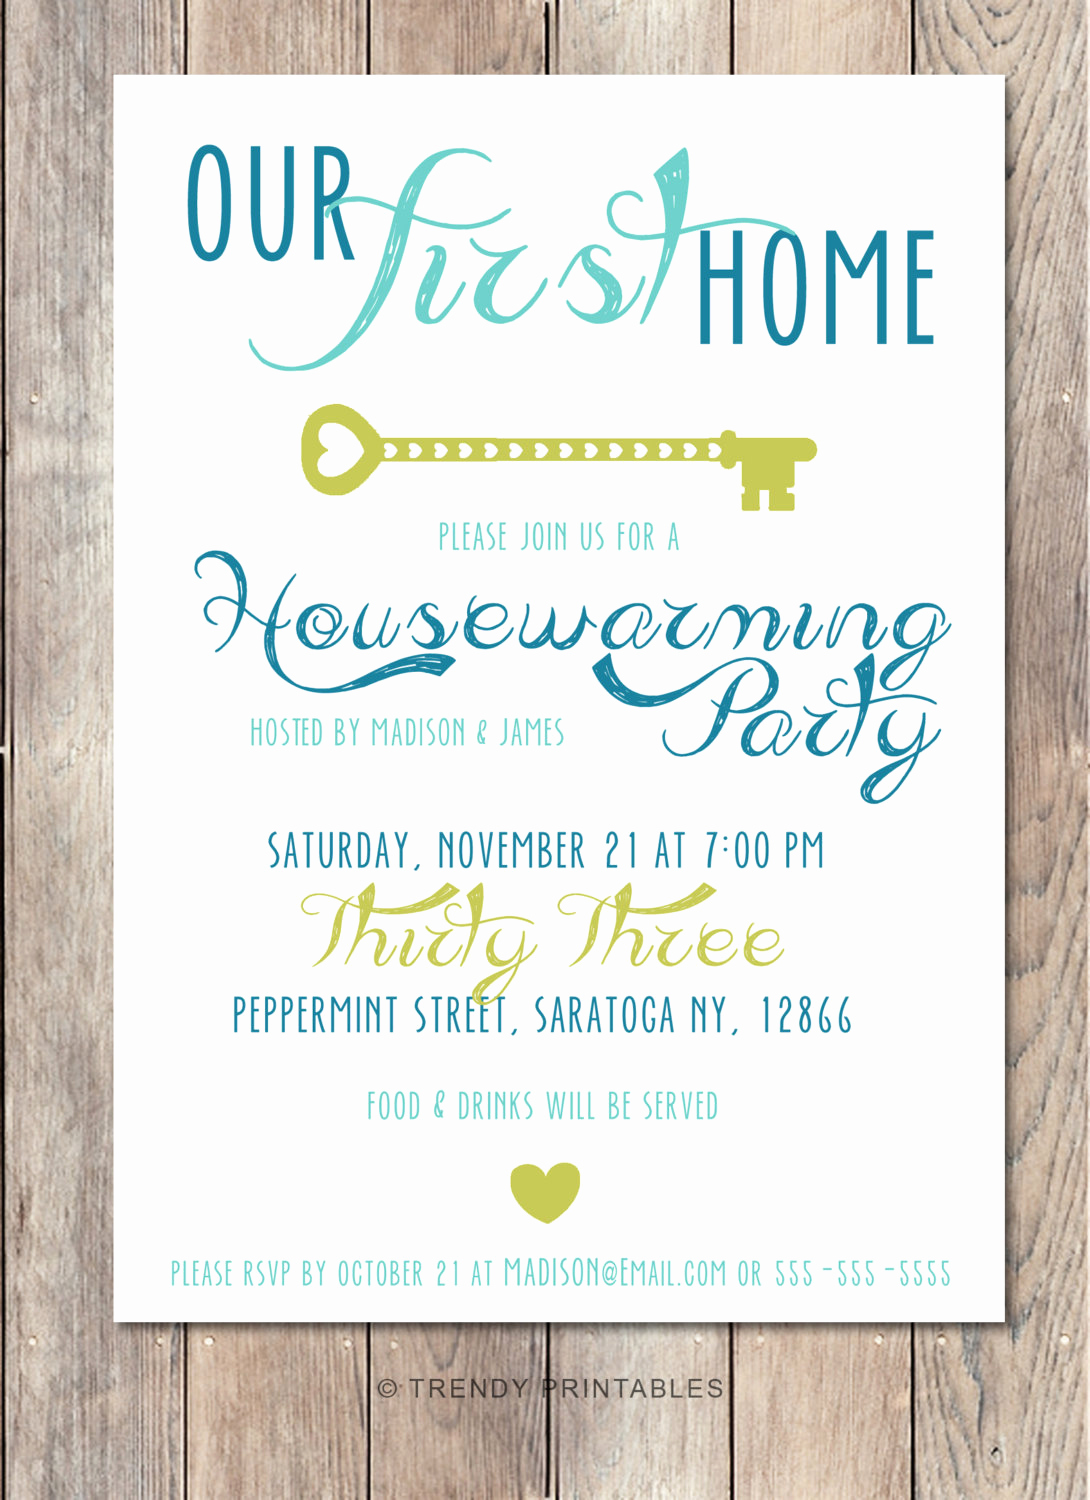 Housewarming Party Invitation Message Best Of Housewarming Party Invitation Housewarming Invitation